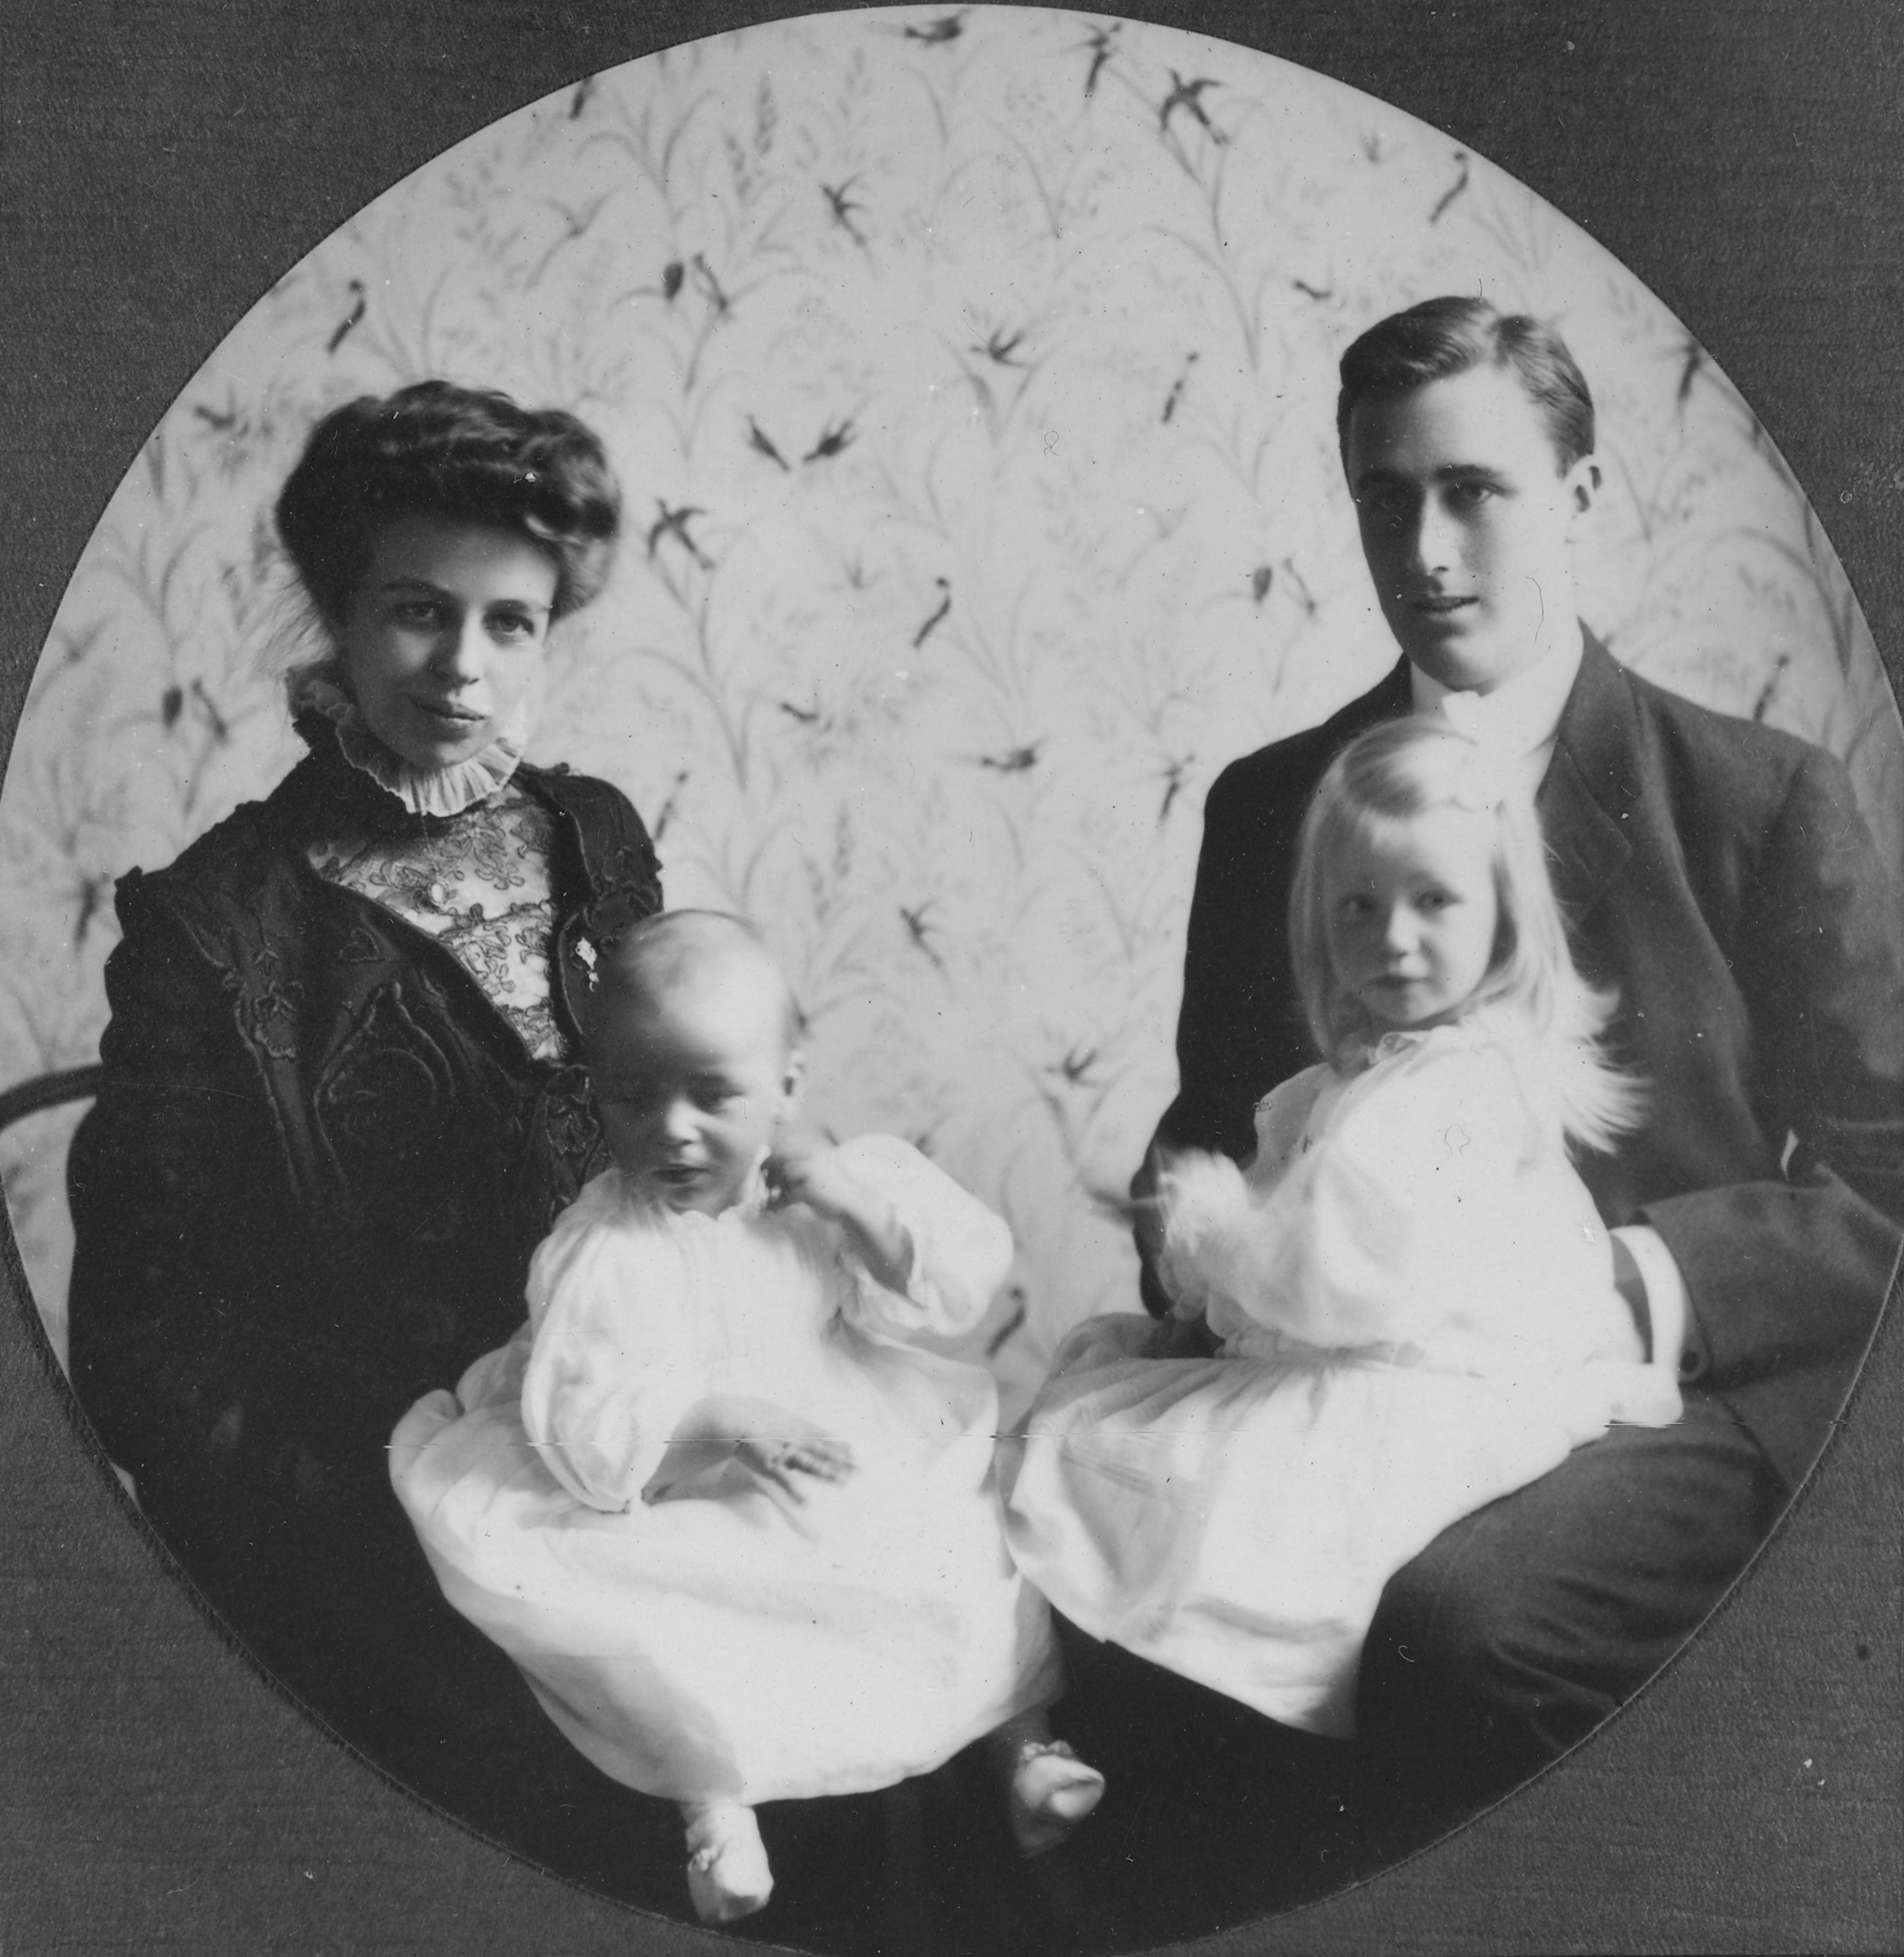 the early life and political career of franklin delano roosevelt Franklin delano roosevelt (january 30 early life roosevelt was born on january 30 arguing that a divorce would ruin franklin's political career.